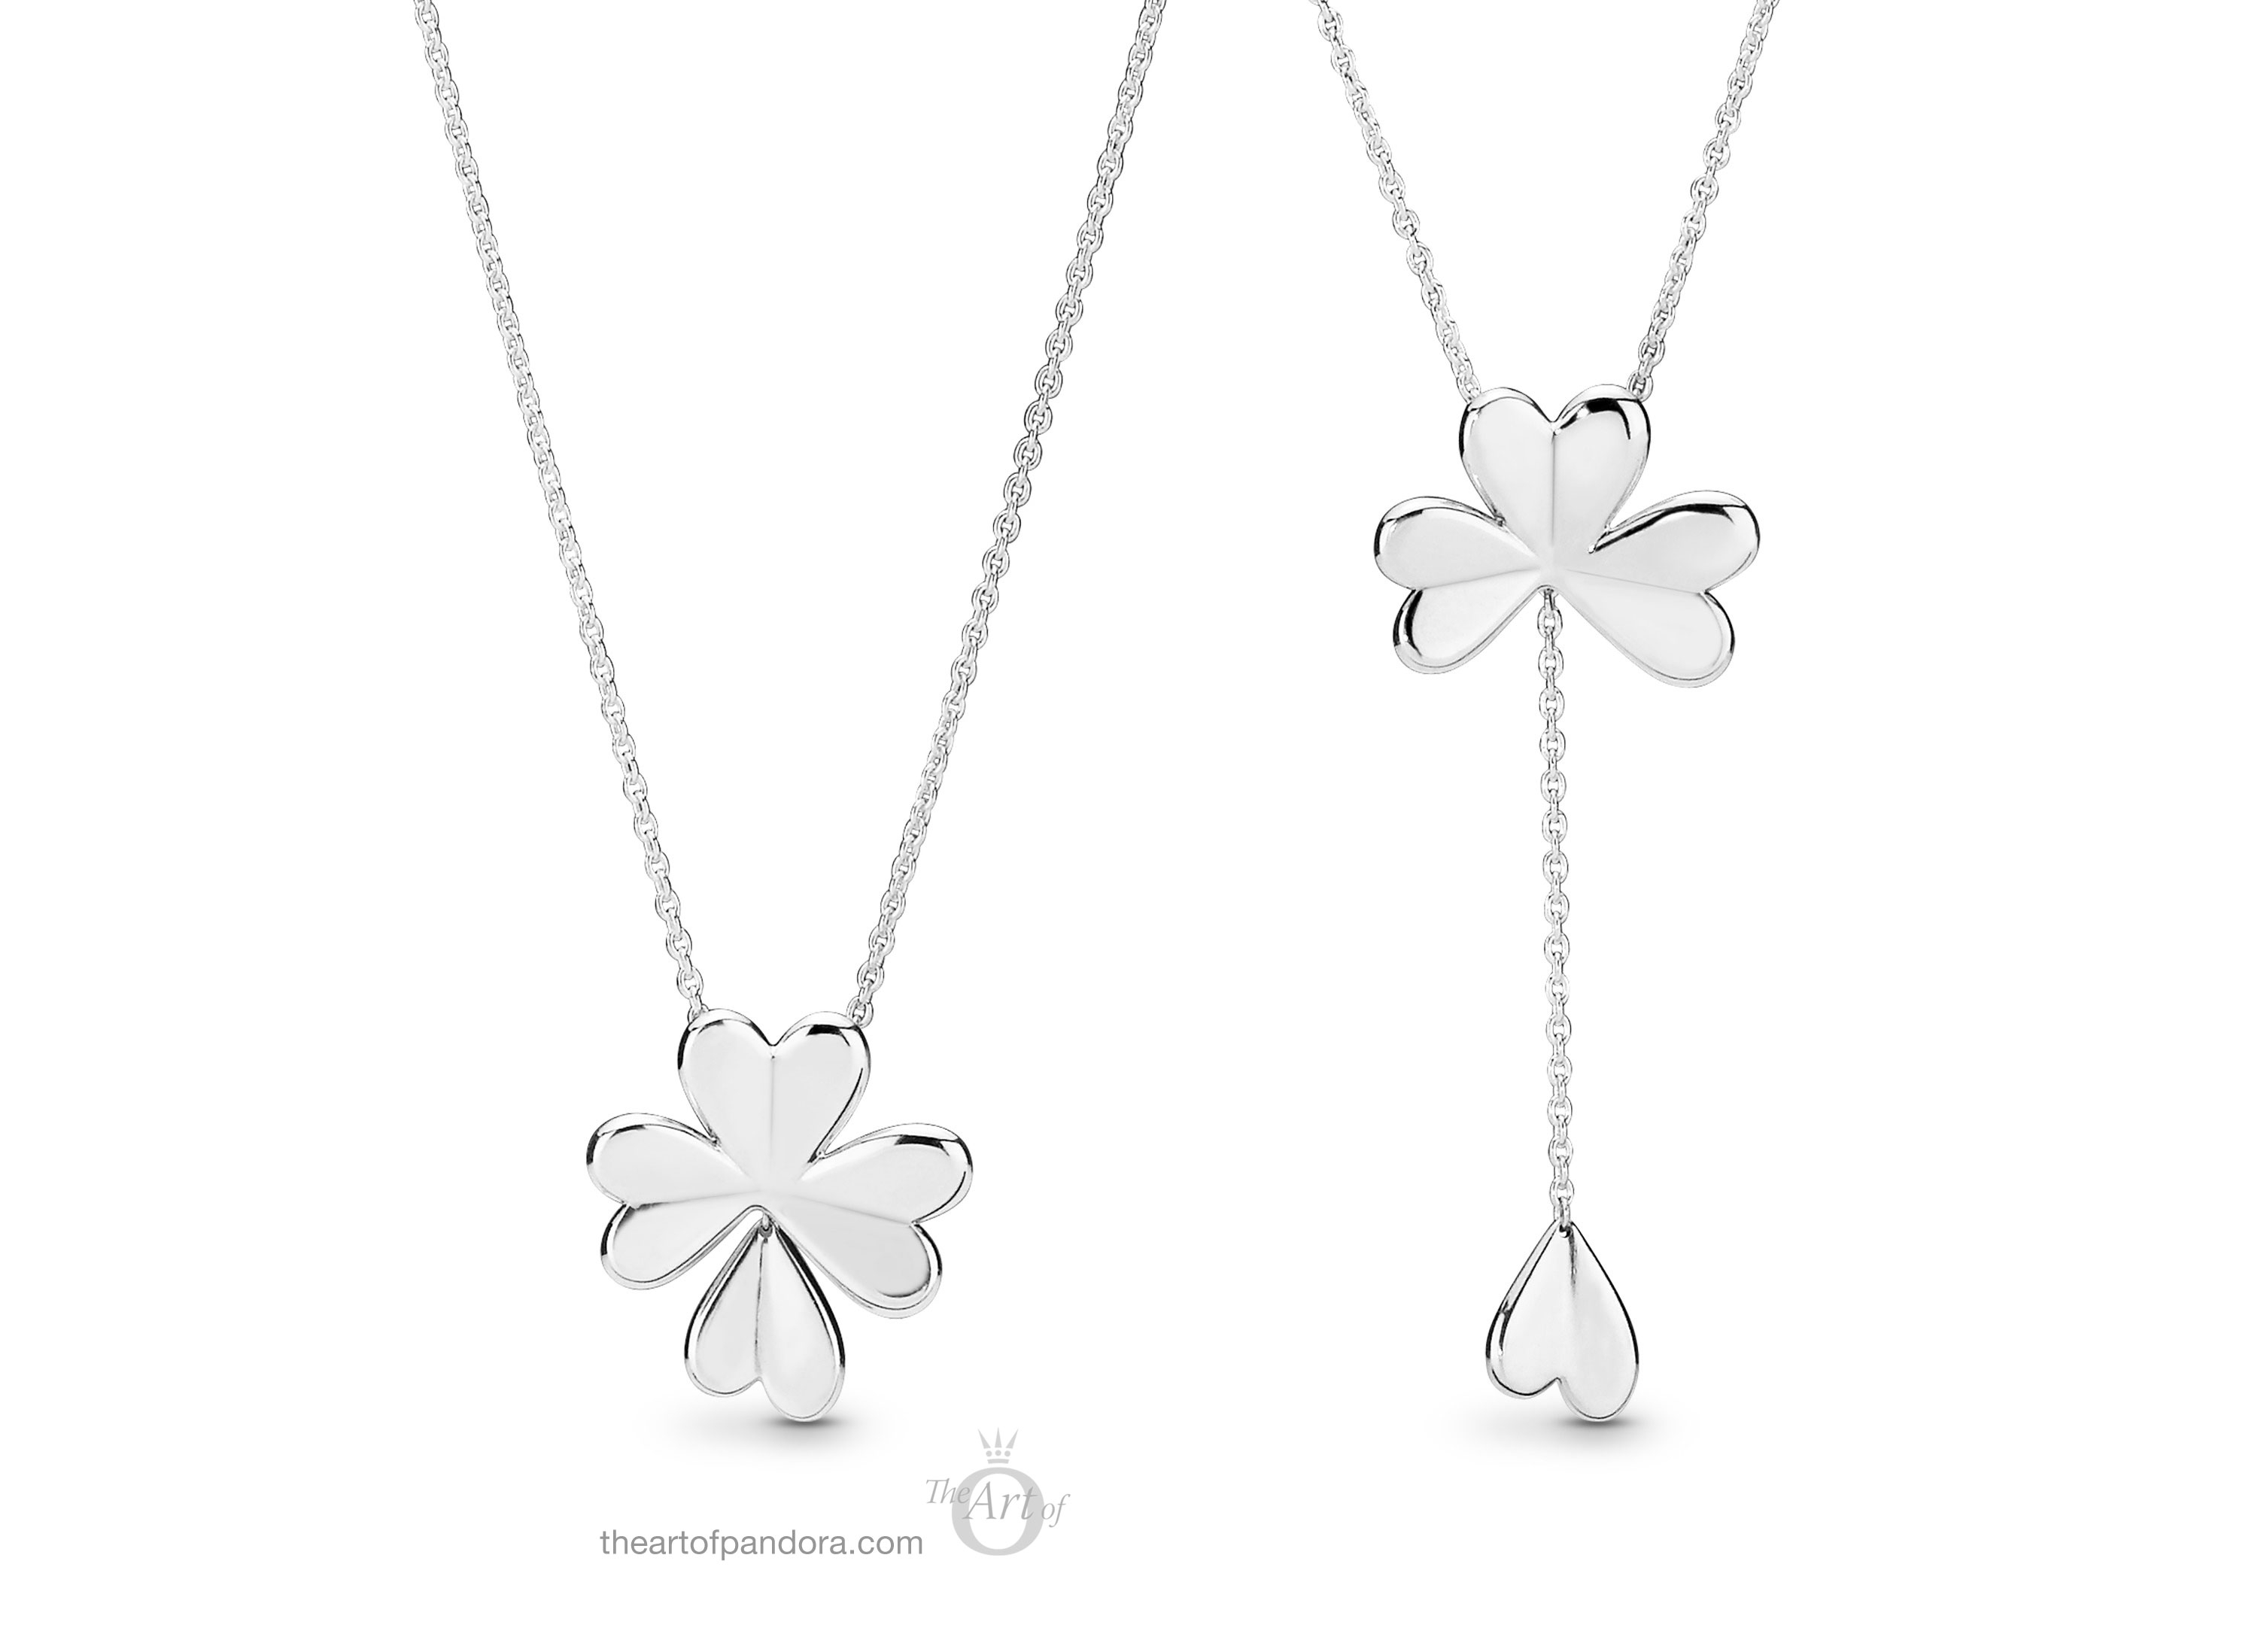 397925 Pandora Lucky Four Leaf Clover Necklace – The Art Of Pandora Throughout Newest Lucky Four Leaf Clover Pendant Necklaces (View 6 of 25)